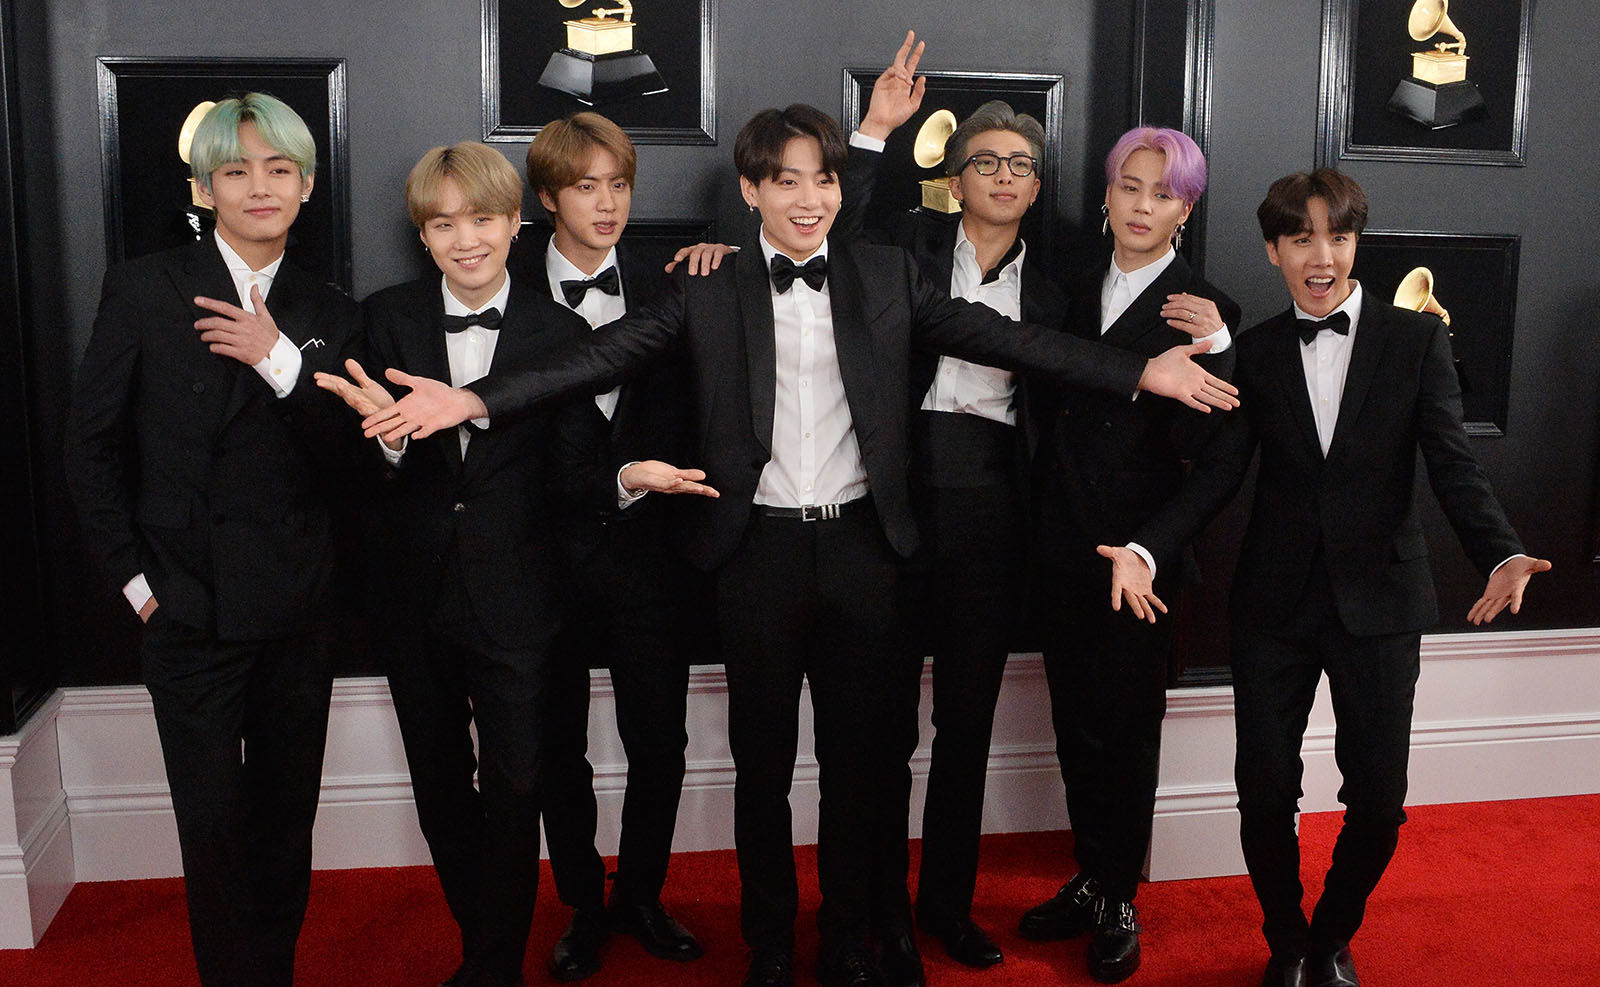 BTS arrives for the 61st Grammy Awards in Los Angeles